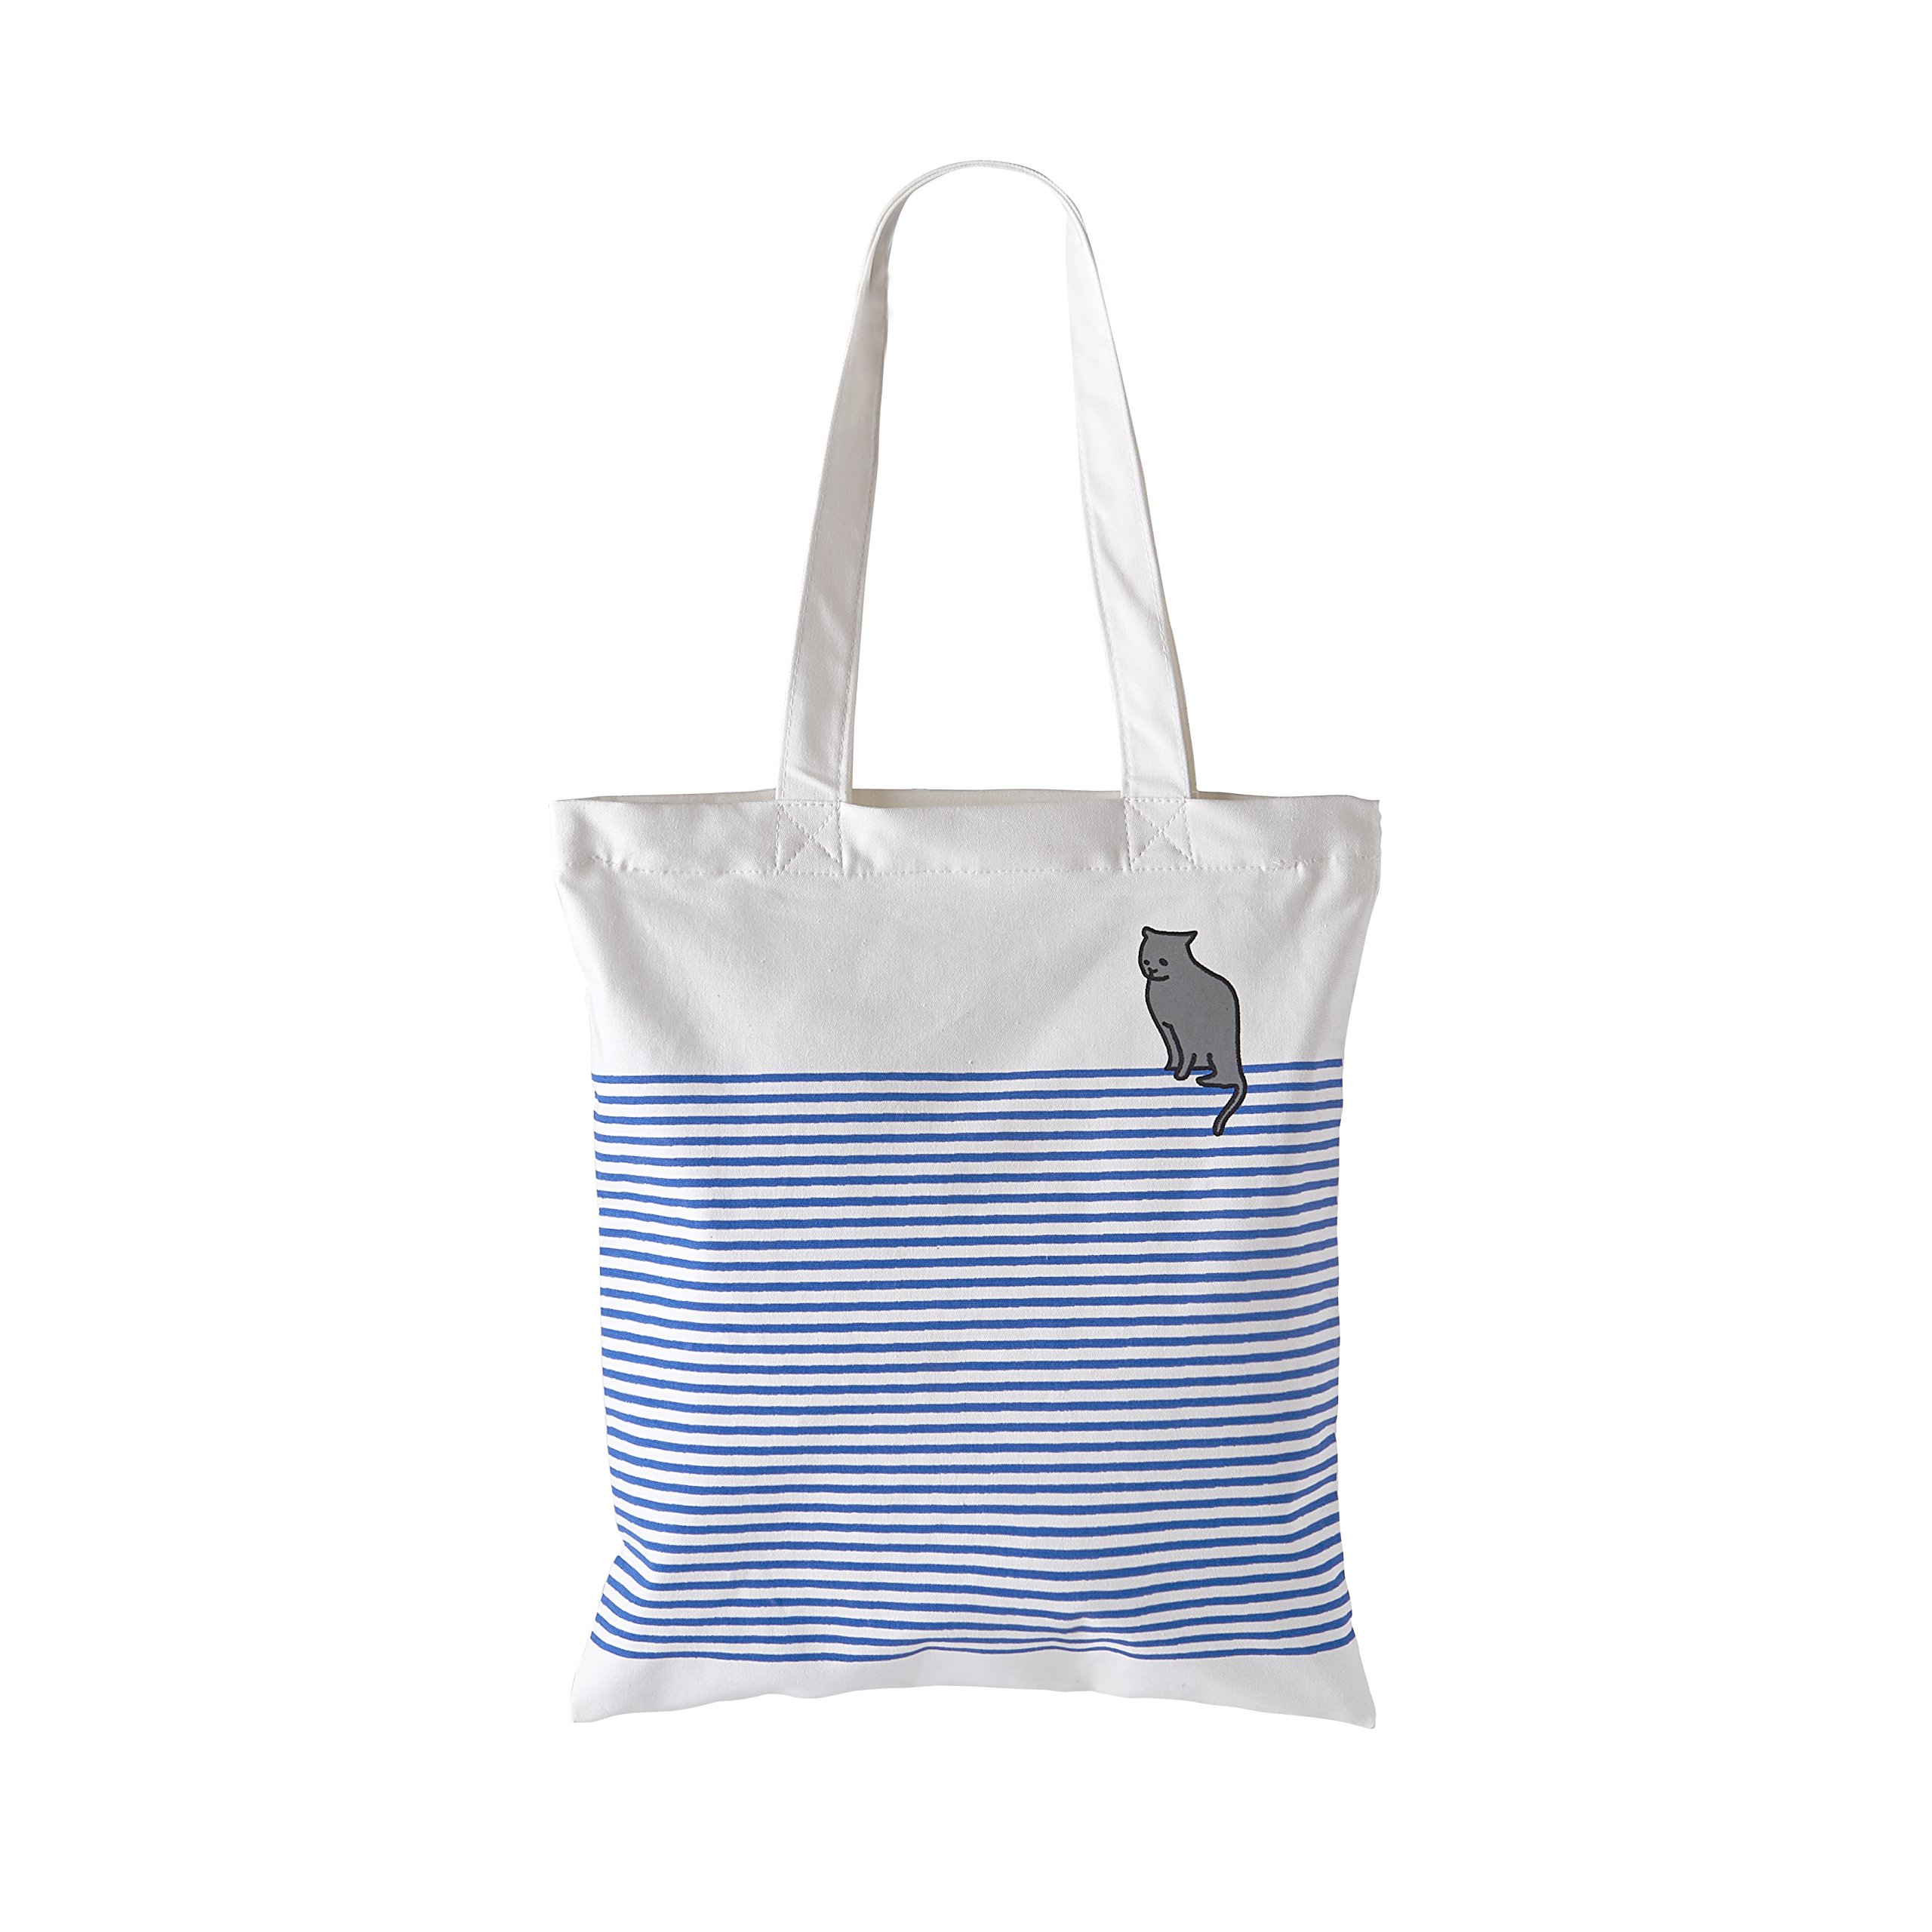 Waitworth 'Out of the Blue' Cotton Canvas Tote Bag Stylish Casual Shoulder Bag with Zipper and Pocket for Shopping Travel and School Work Blue Striped Eco-Friendly (Bluecat)